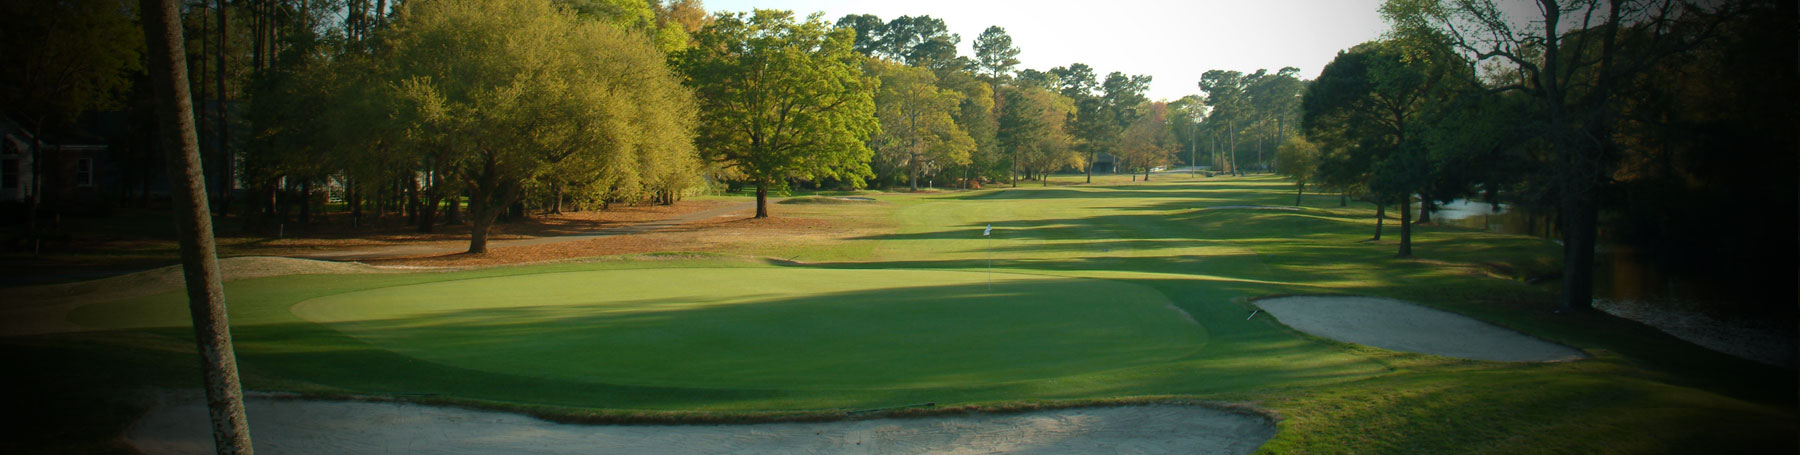 Litchfield Golf Club